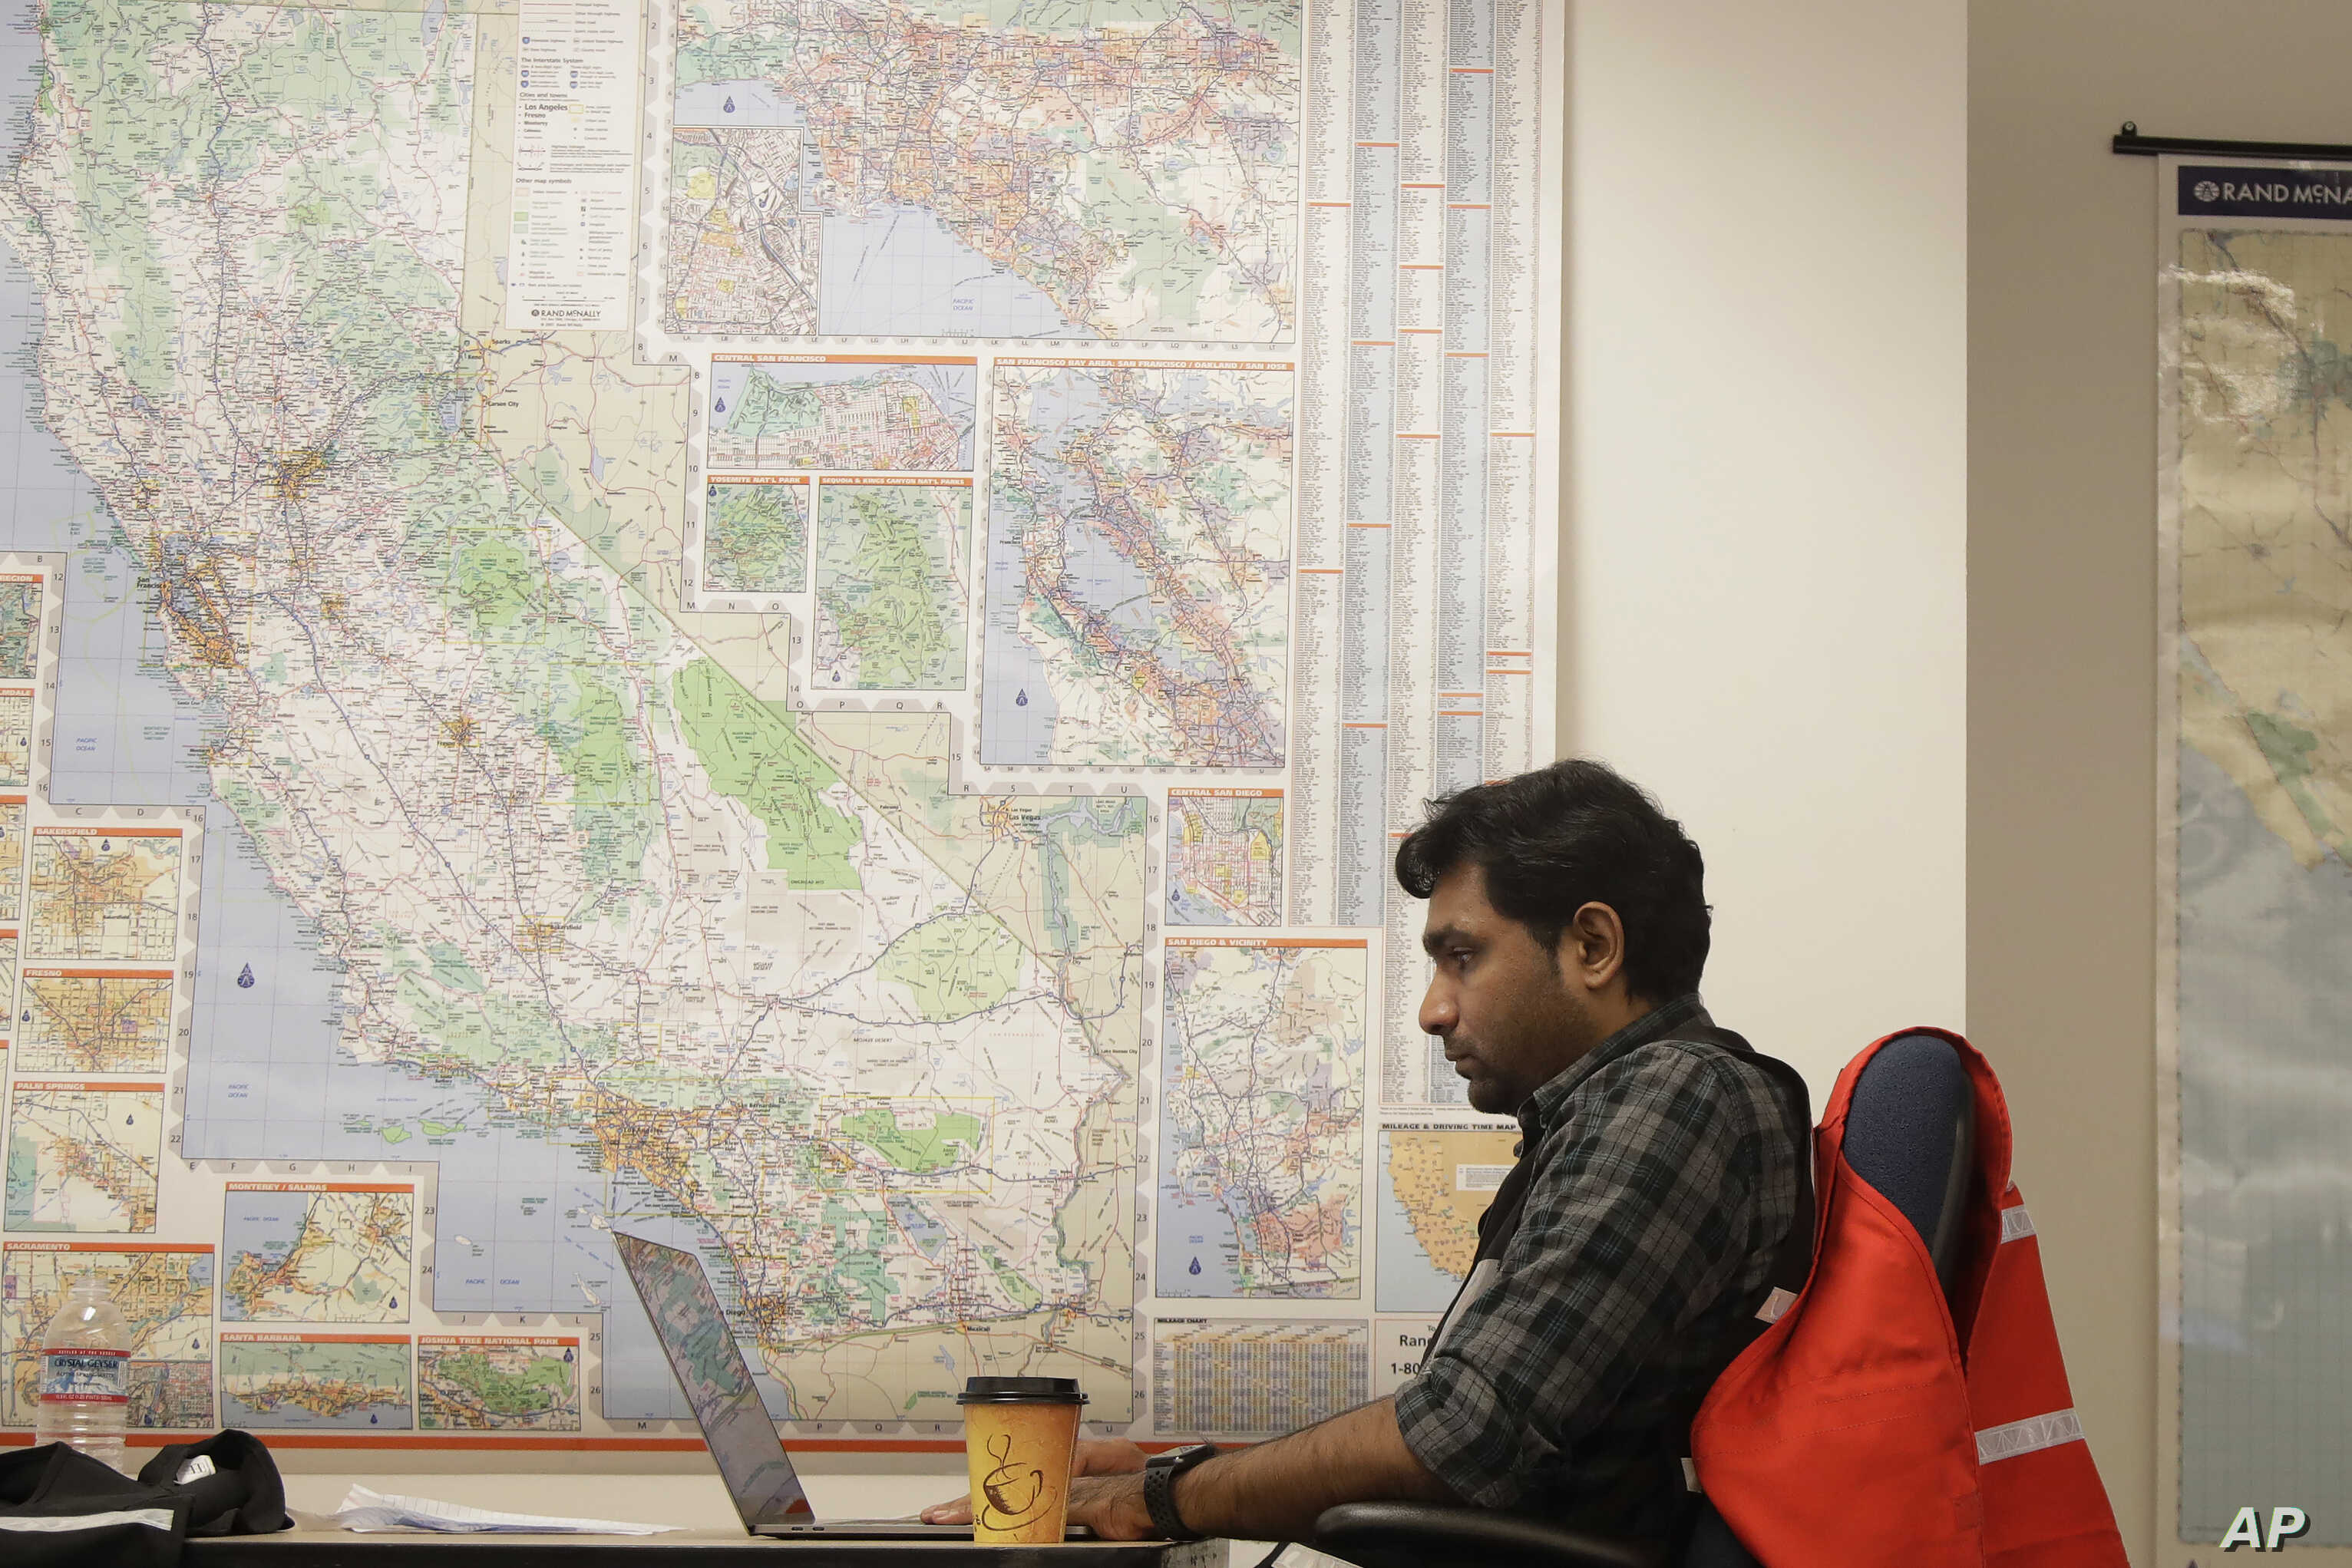 Senior program analyst Siva Jasti works next to a map of California in the Pacific Gas & Electric (PG&E) Emergency Operations…